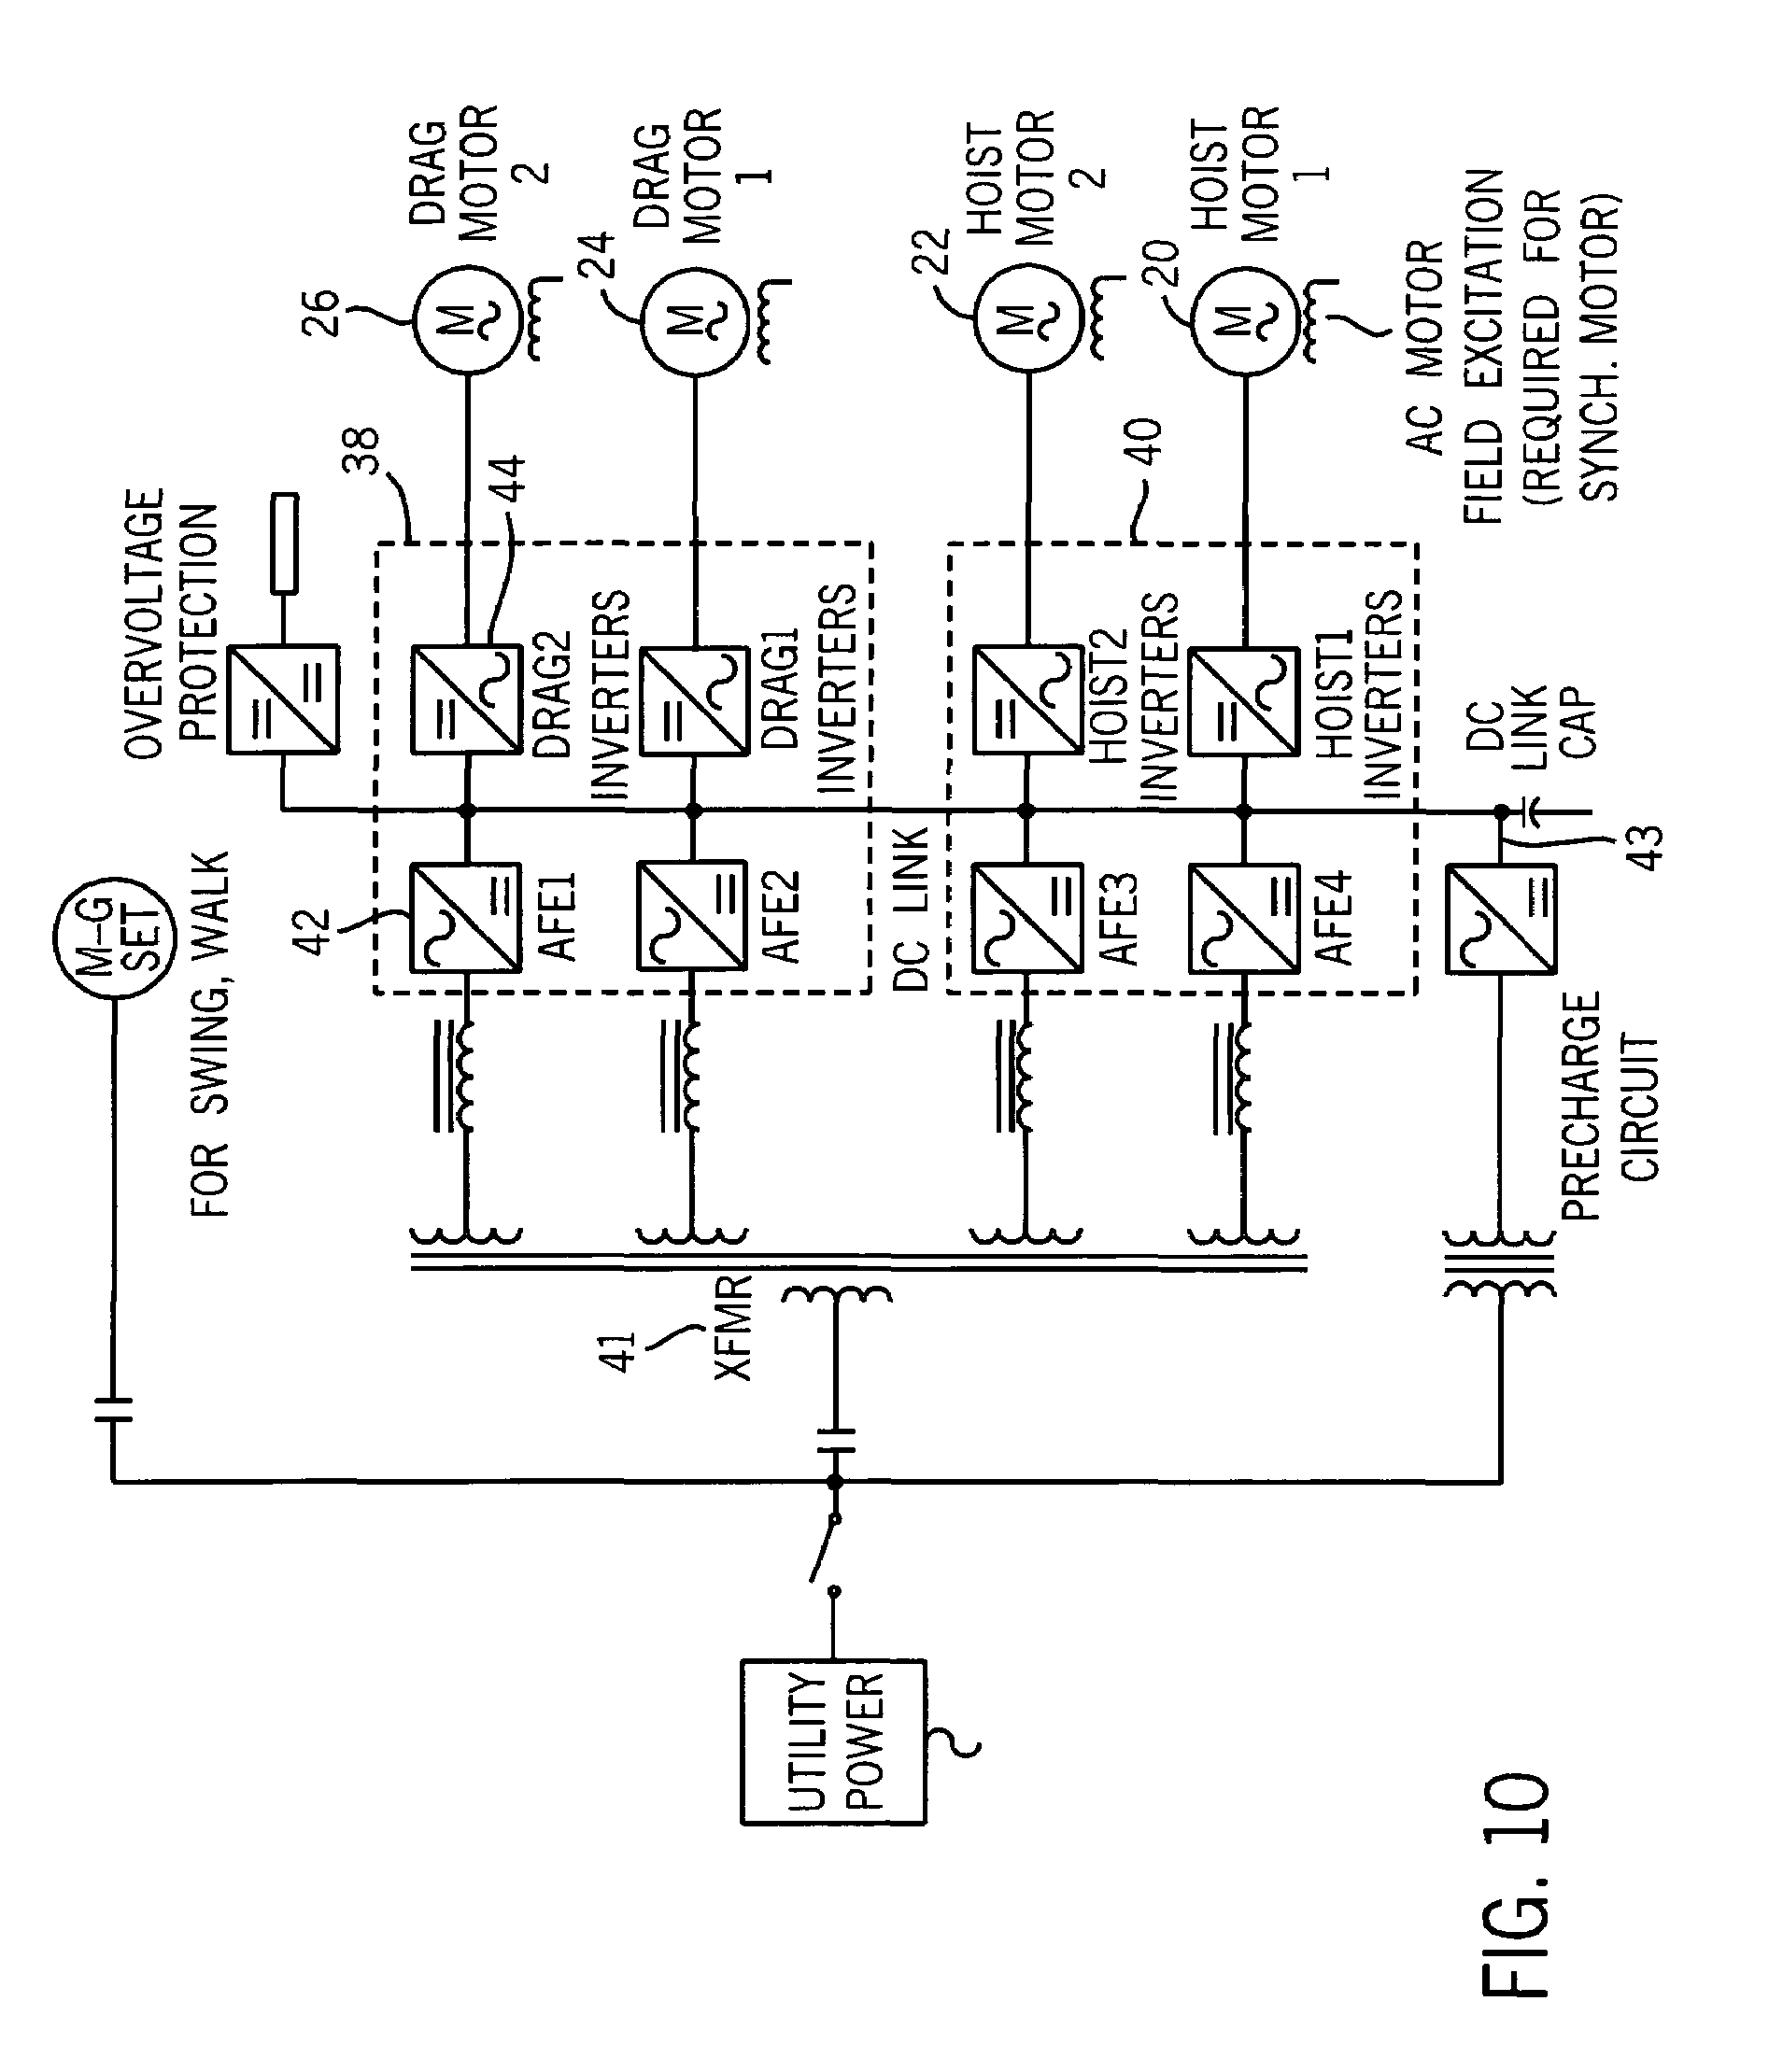 Ge Dc Motor Wiring Diagram Diagrams Instructions Dragline Drag Patent Us7024805 Excavating Machine With Direct Drive